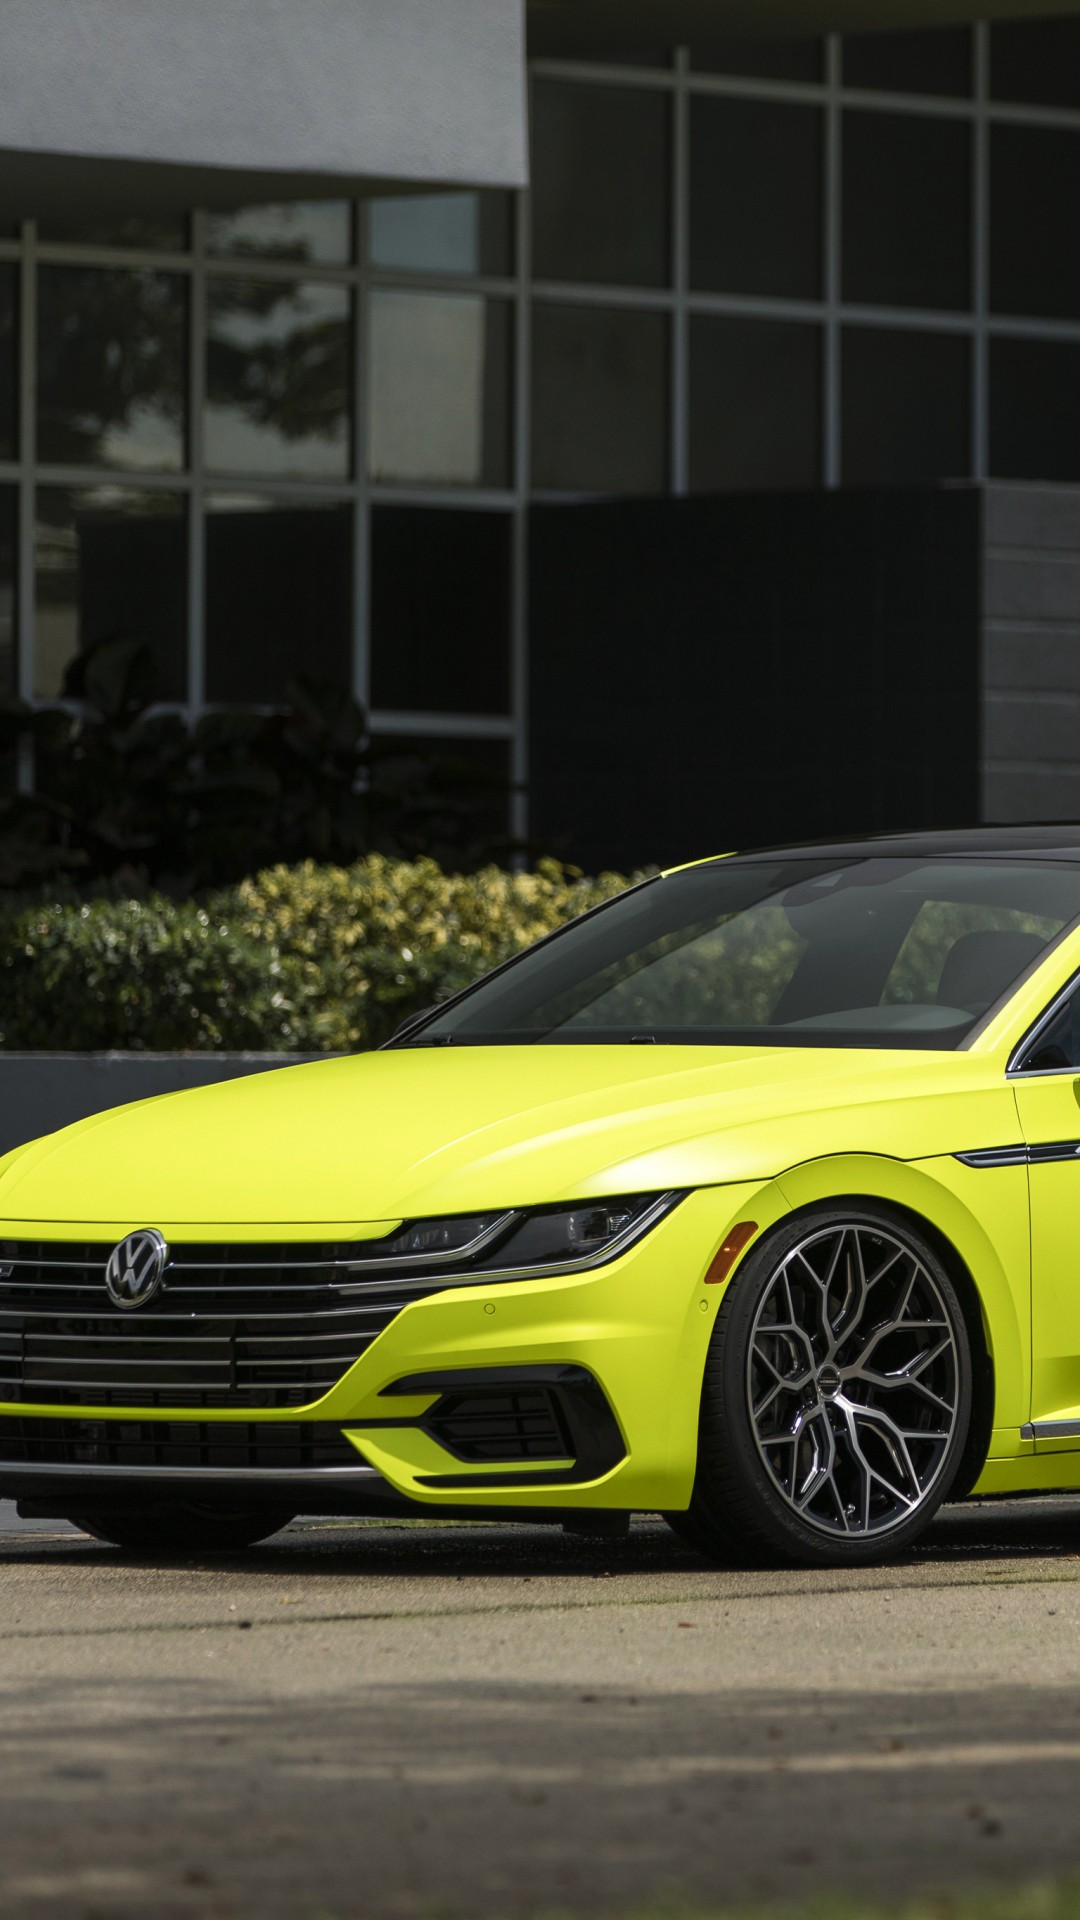 Cars On Line >> Wallpaper Volkswagen Arteon R-Line, 2019 Cars, 4K, Cars ...